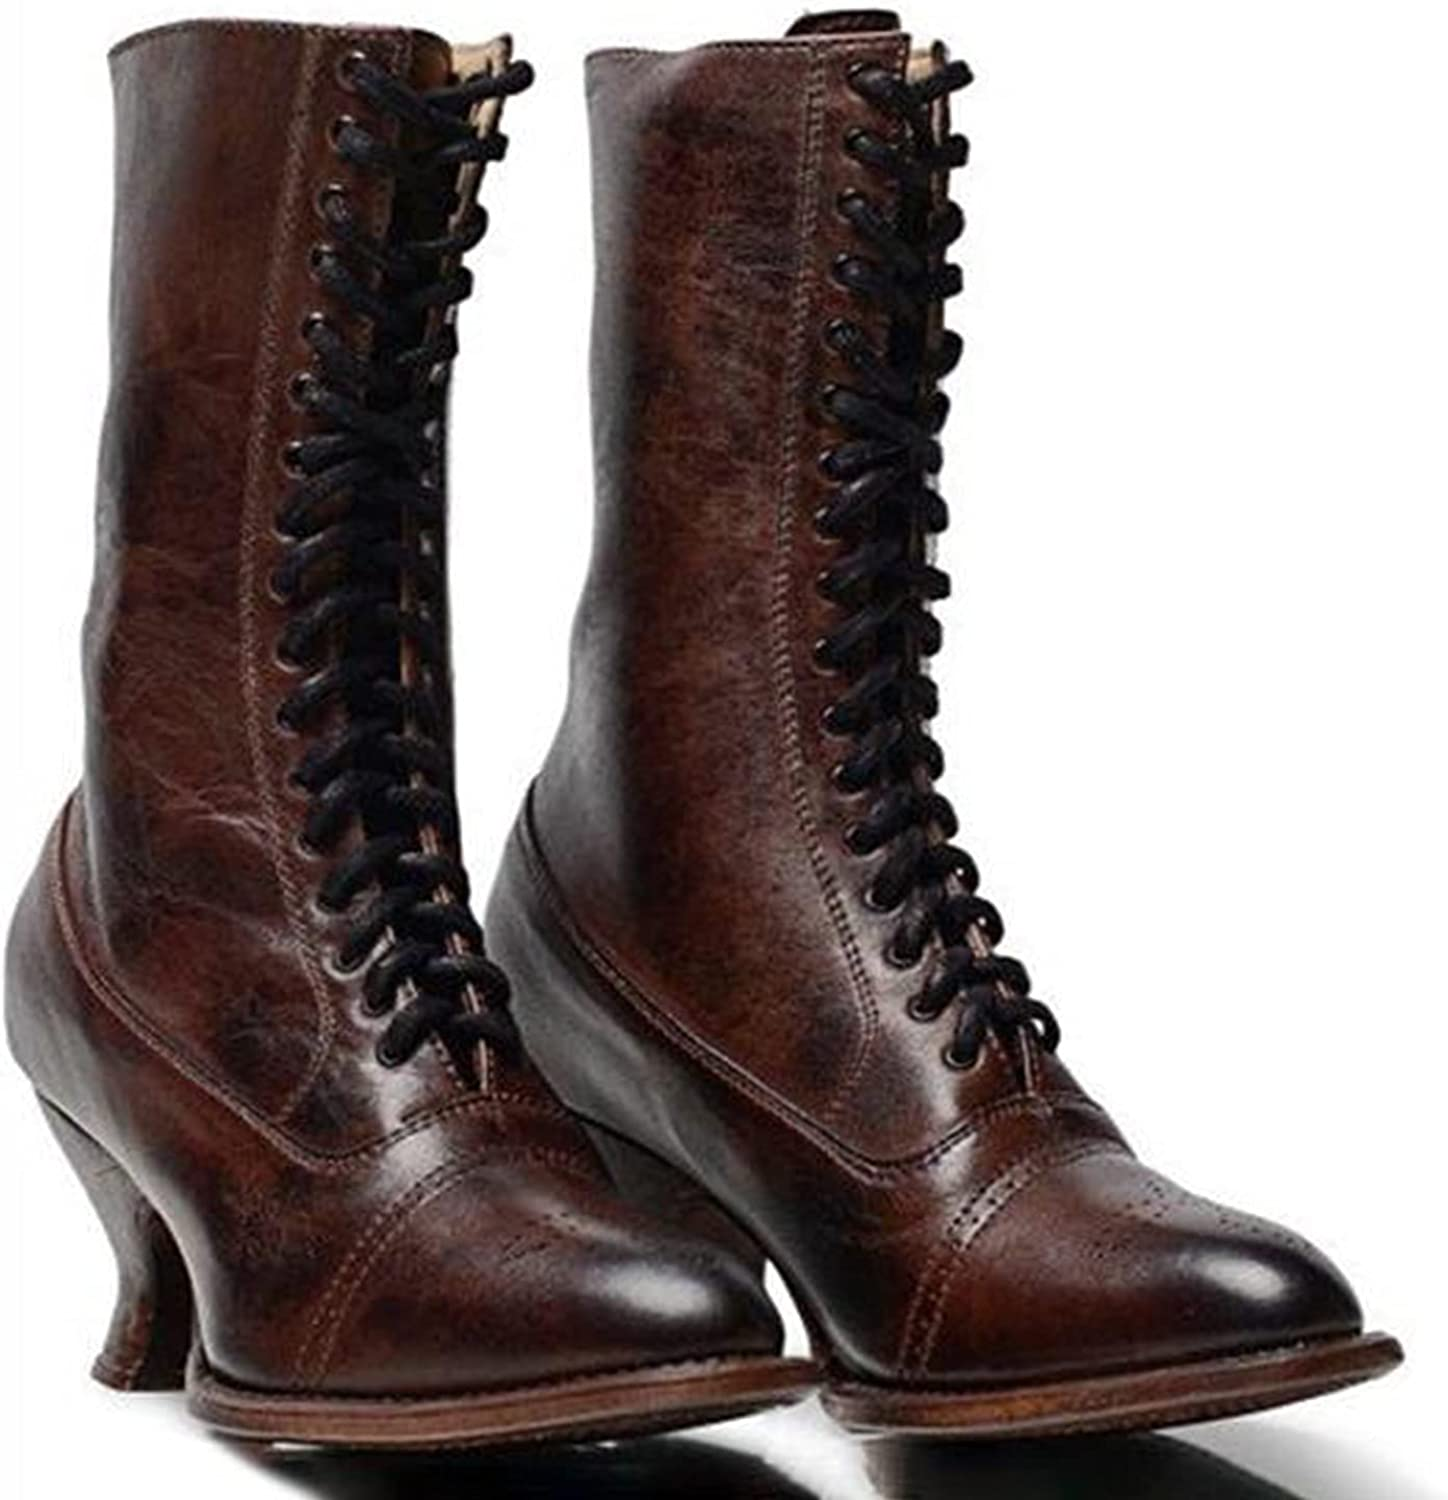 Ultra-Cheap Deals SaraIris Womens Challenge the lowest price of Japan Boots Mid Calf Lace-up Chunky Heel Gothic